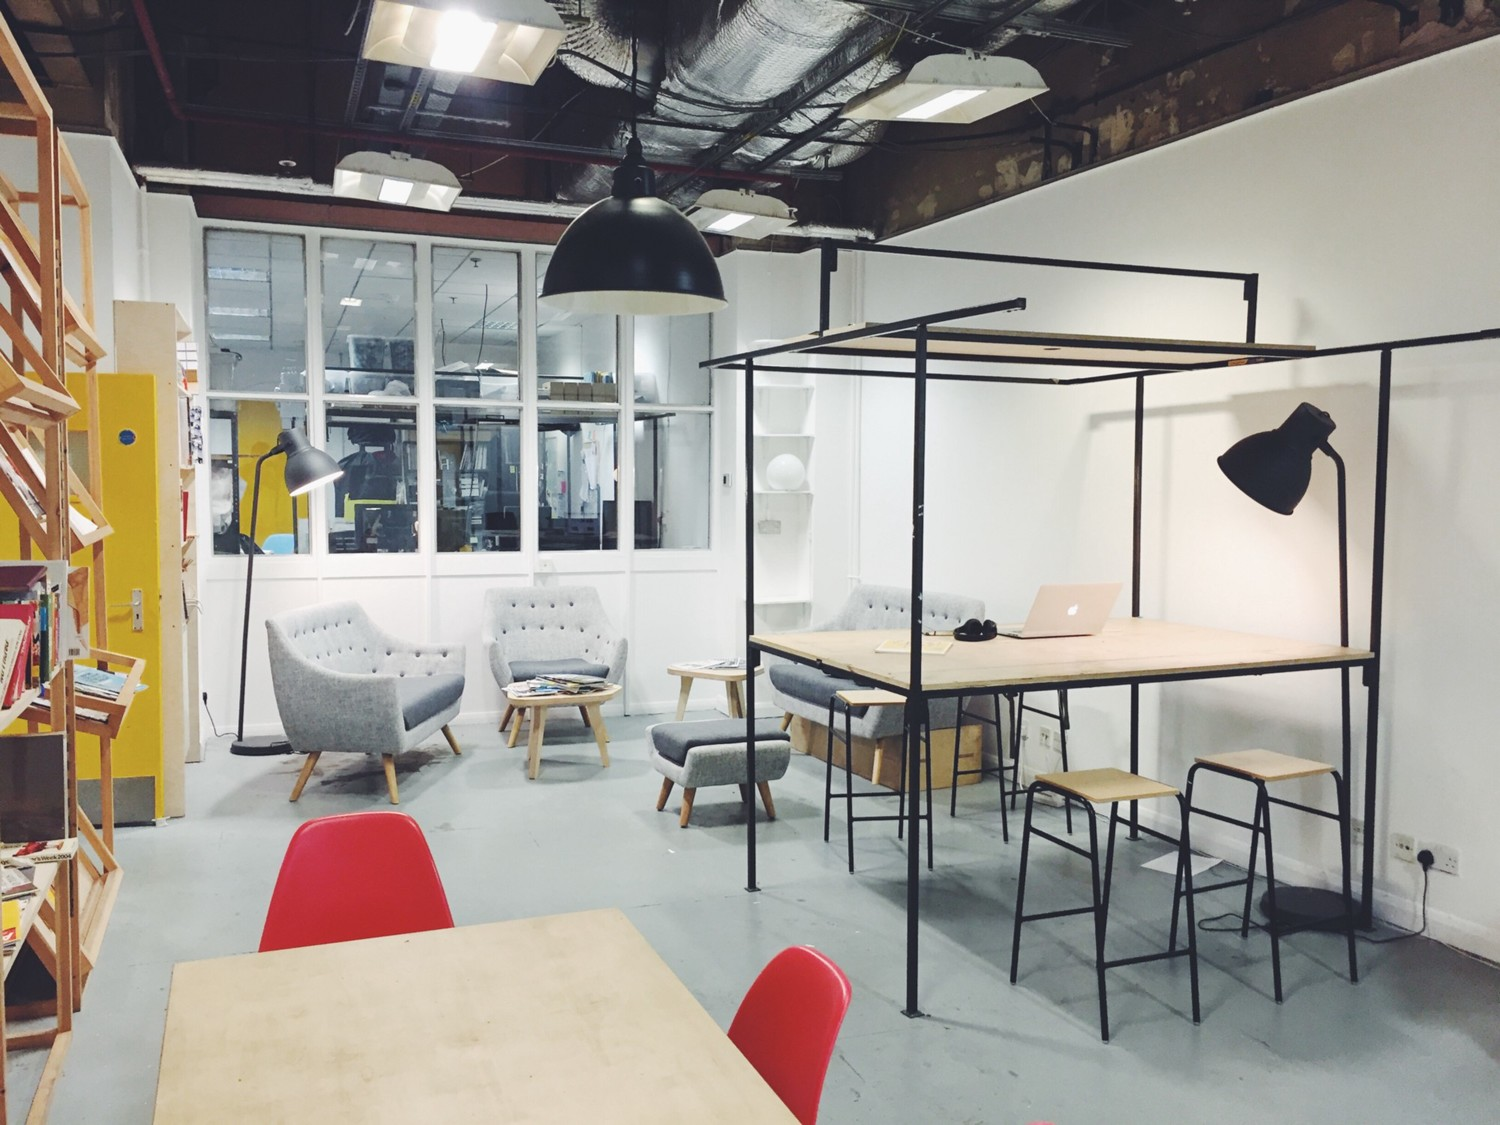 Our lovely studio space at Makerversity